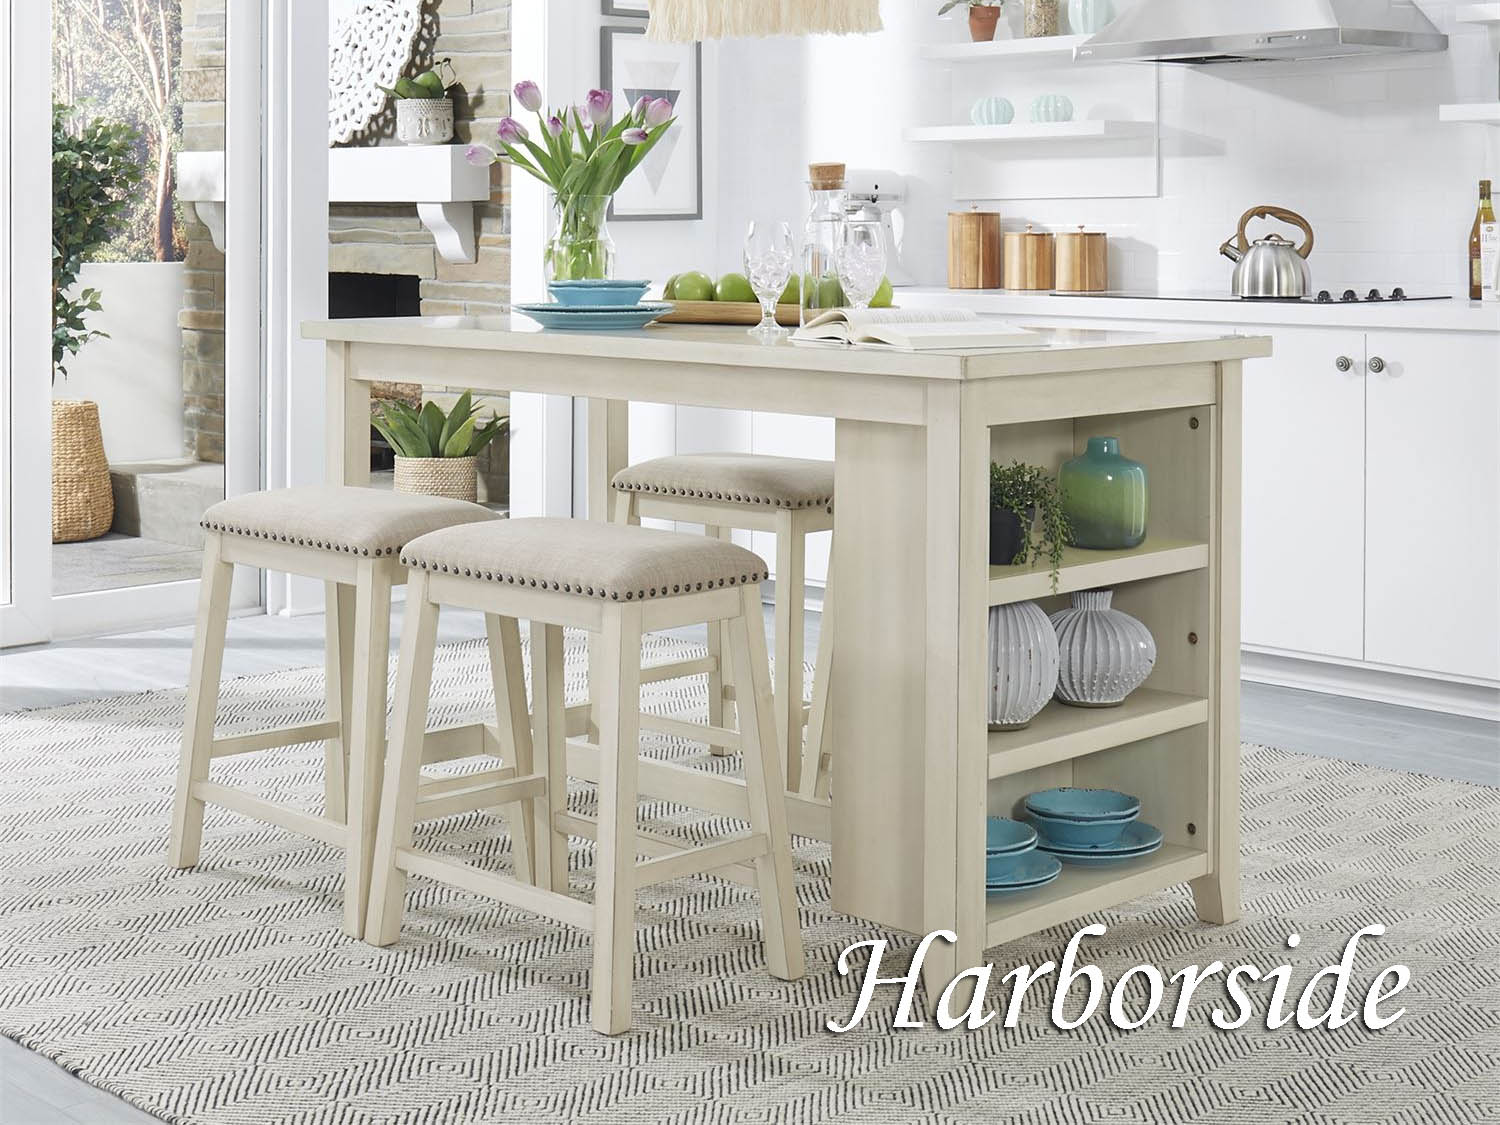 Barbo's Furniture, Harborside, Counter, Height, Dining, Dining Room, Kitchen, Kitchenette, Cape Cod, Coastal, Casual, Seaside, Veneer, Cottage, Table, Stool